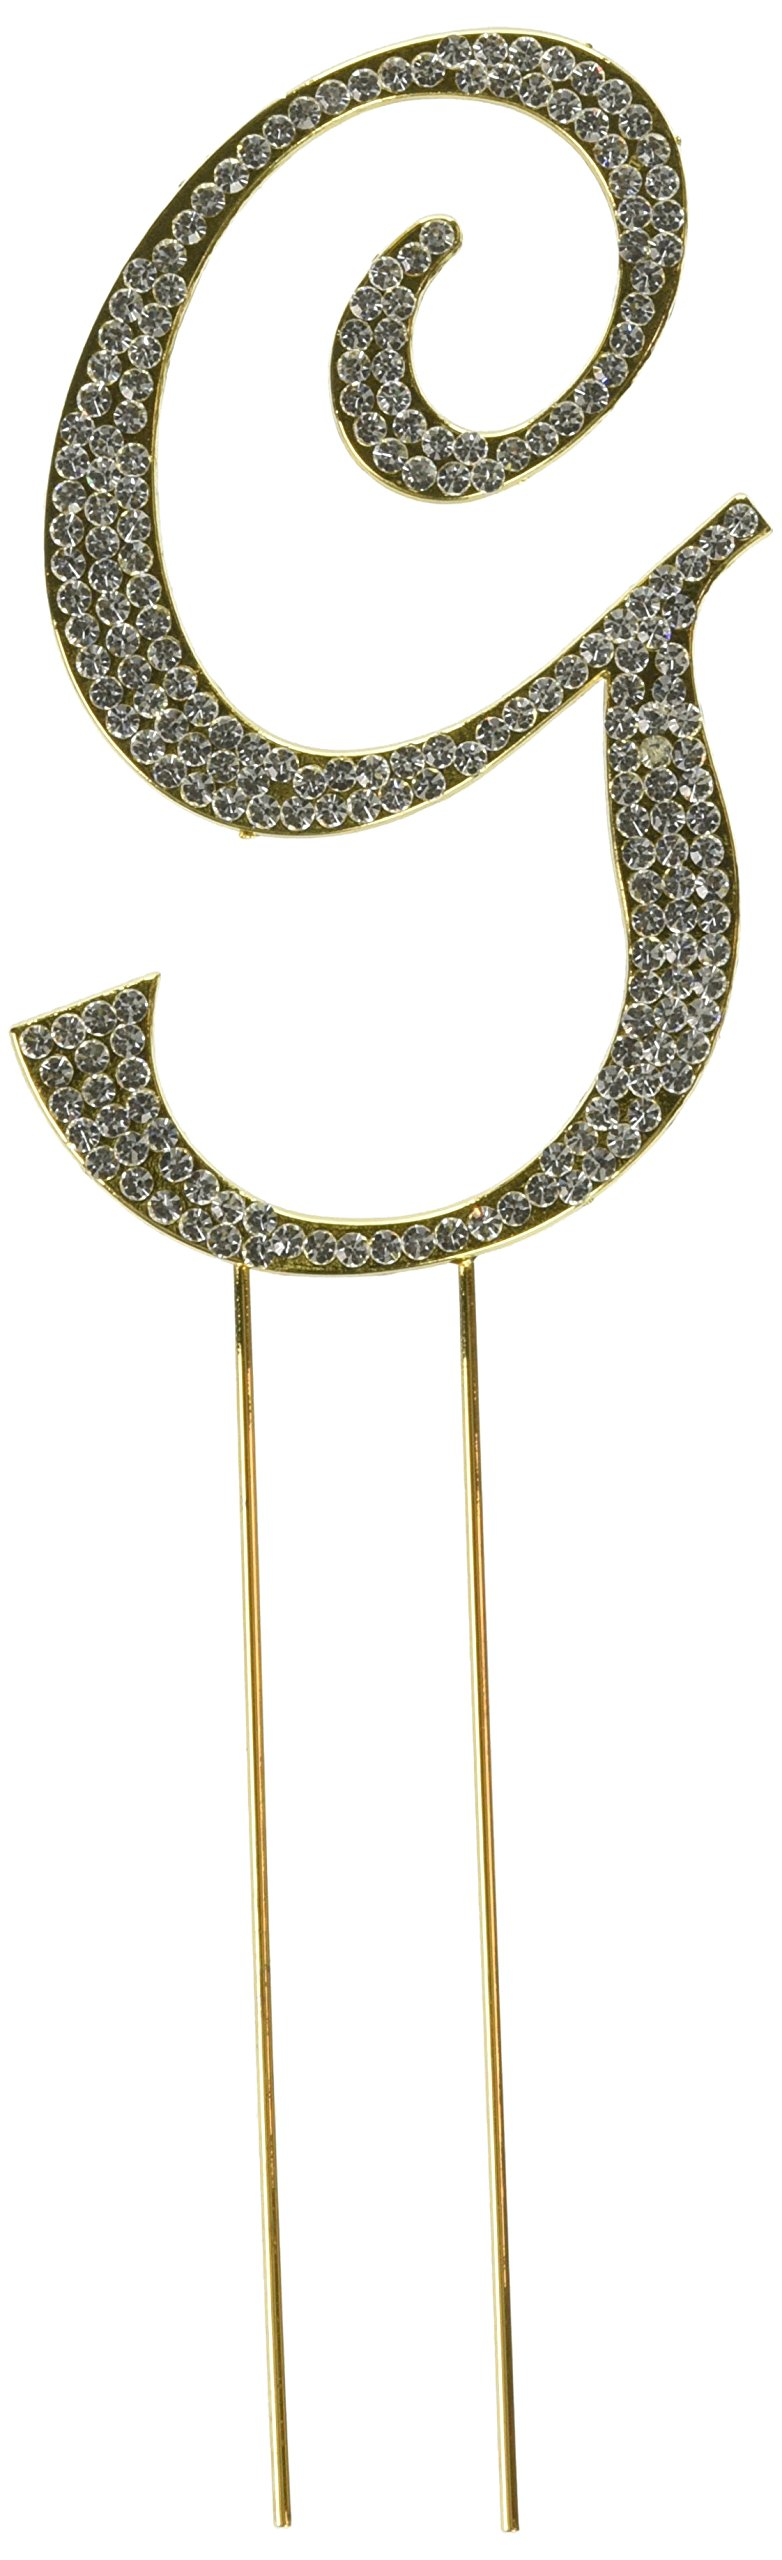 Unik Occasions Sparkling Collection Crystal Rhinestone Monogram Cake Topper - Letter G, Large, Gold